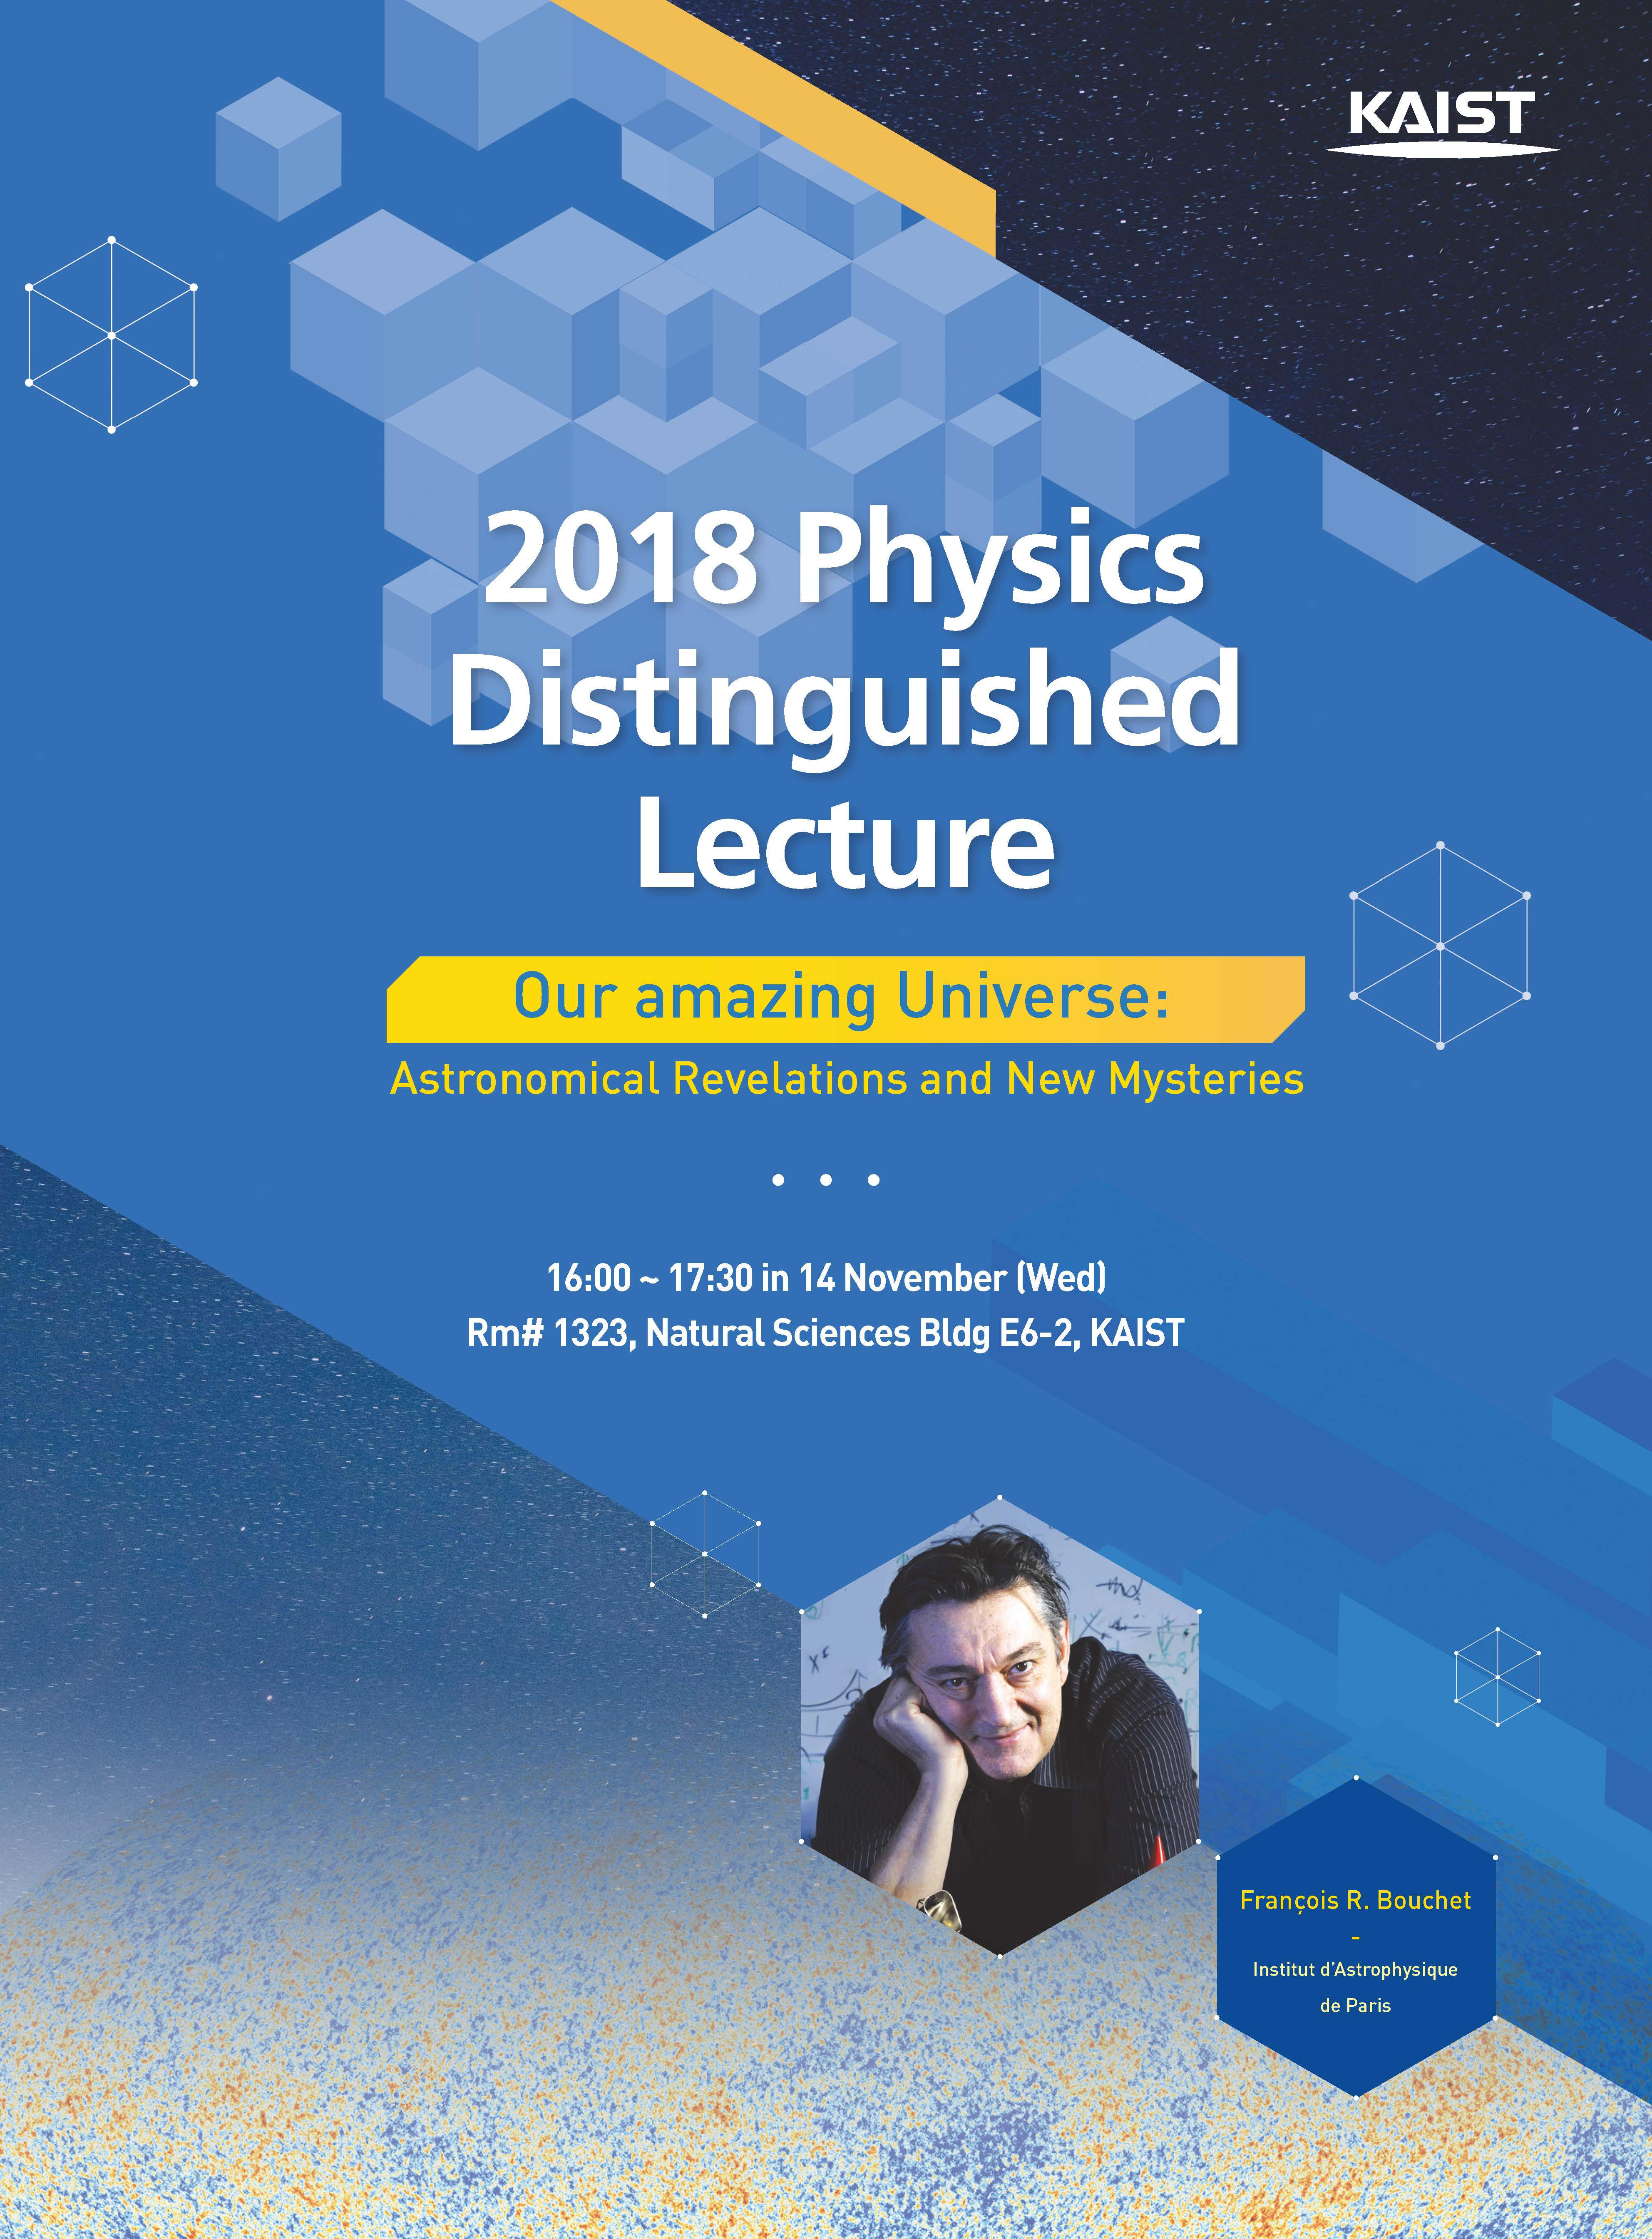 2018 Physics Distinguished Lecture포스터-Dr. Bouchet.jpg